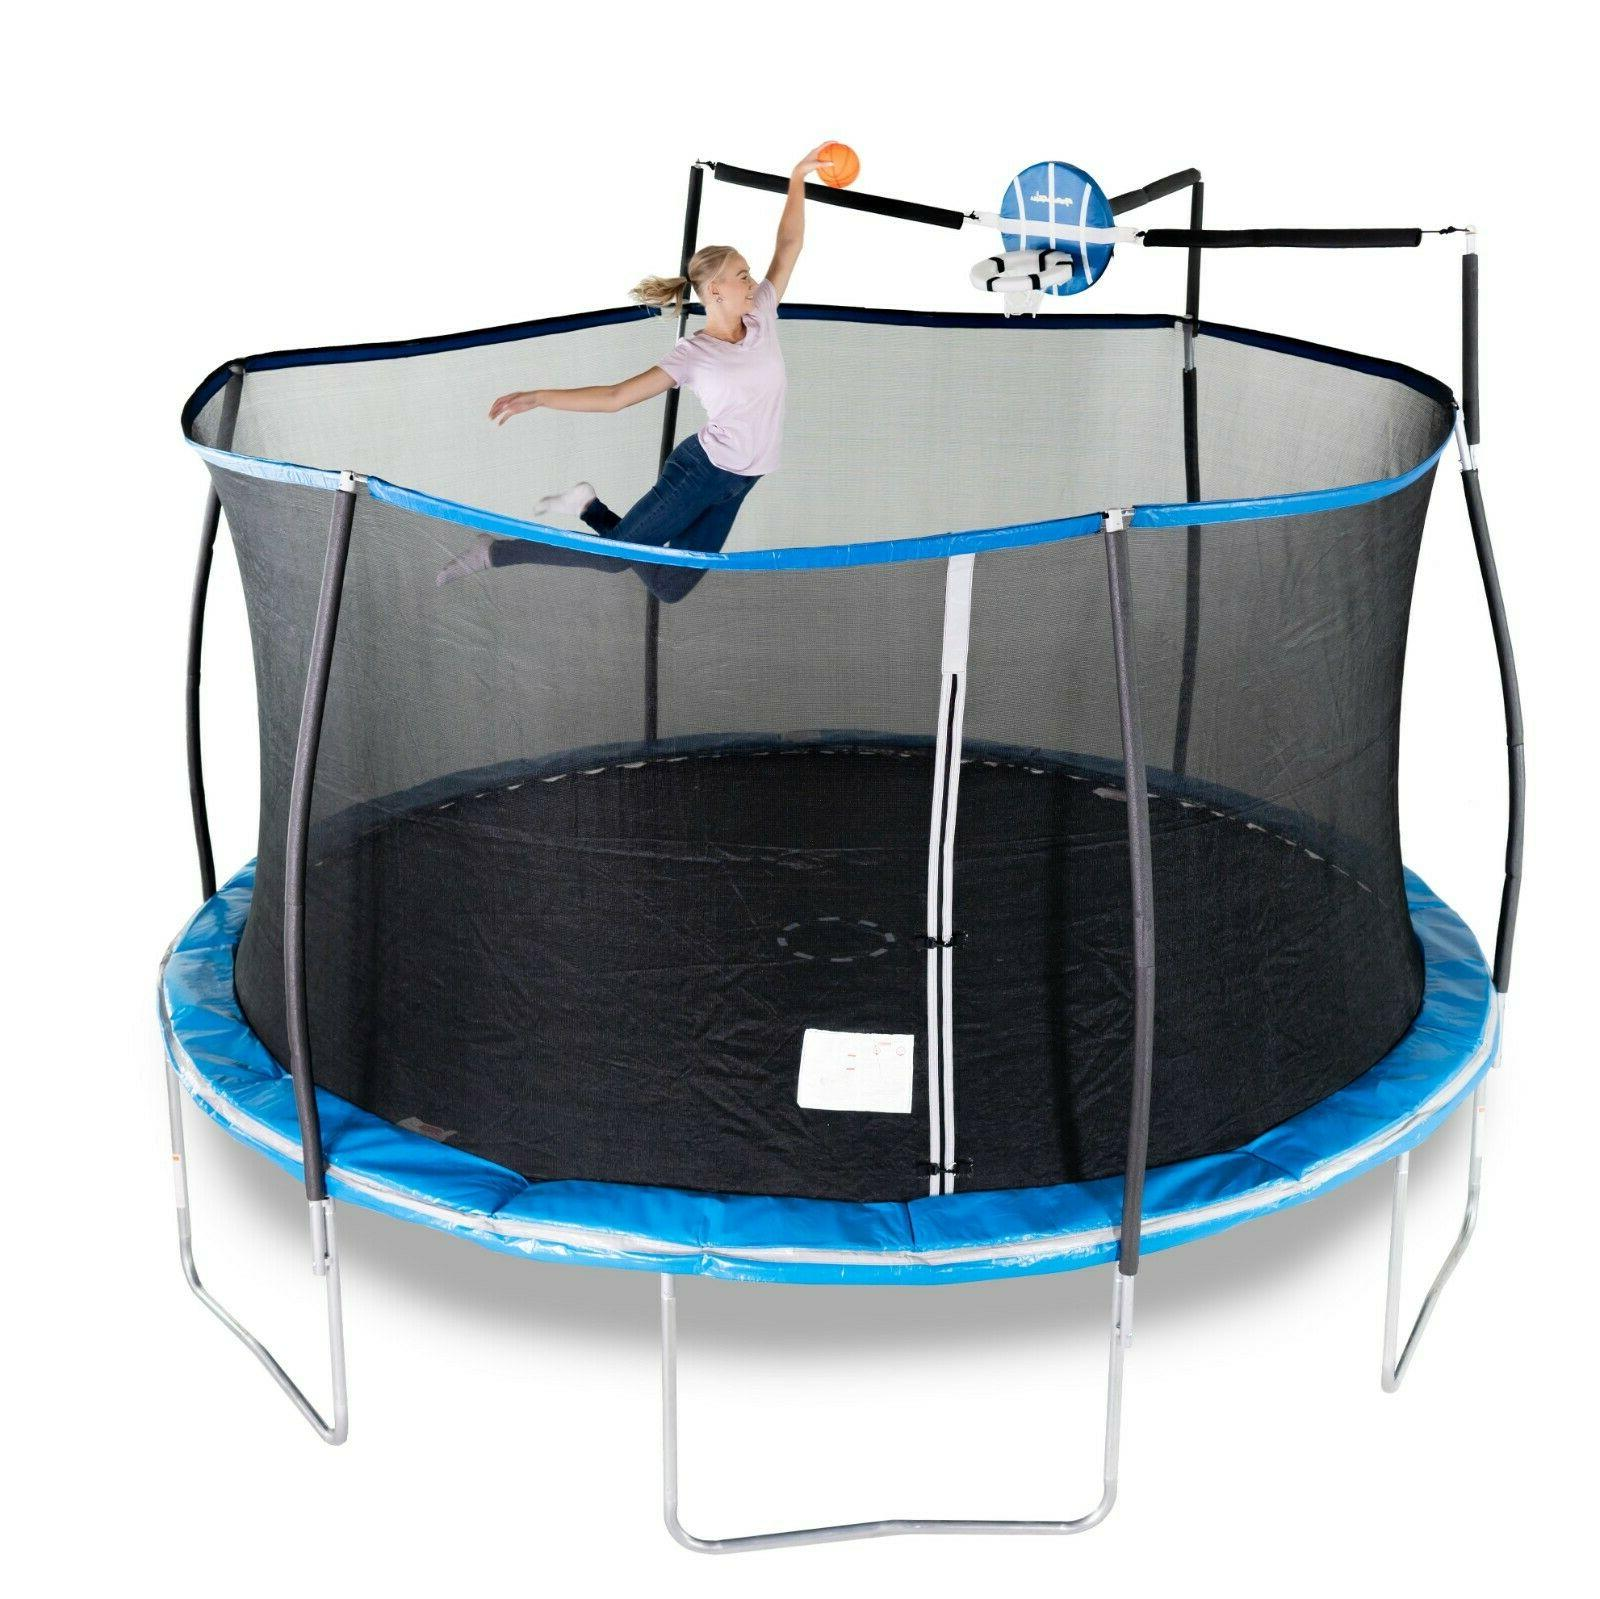 Steelflex Trampoline 14' with Enclosure Net and Slama Jama B